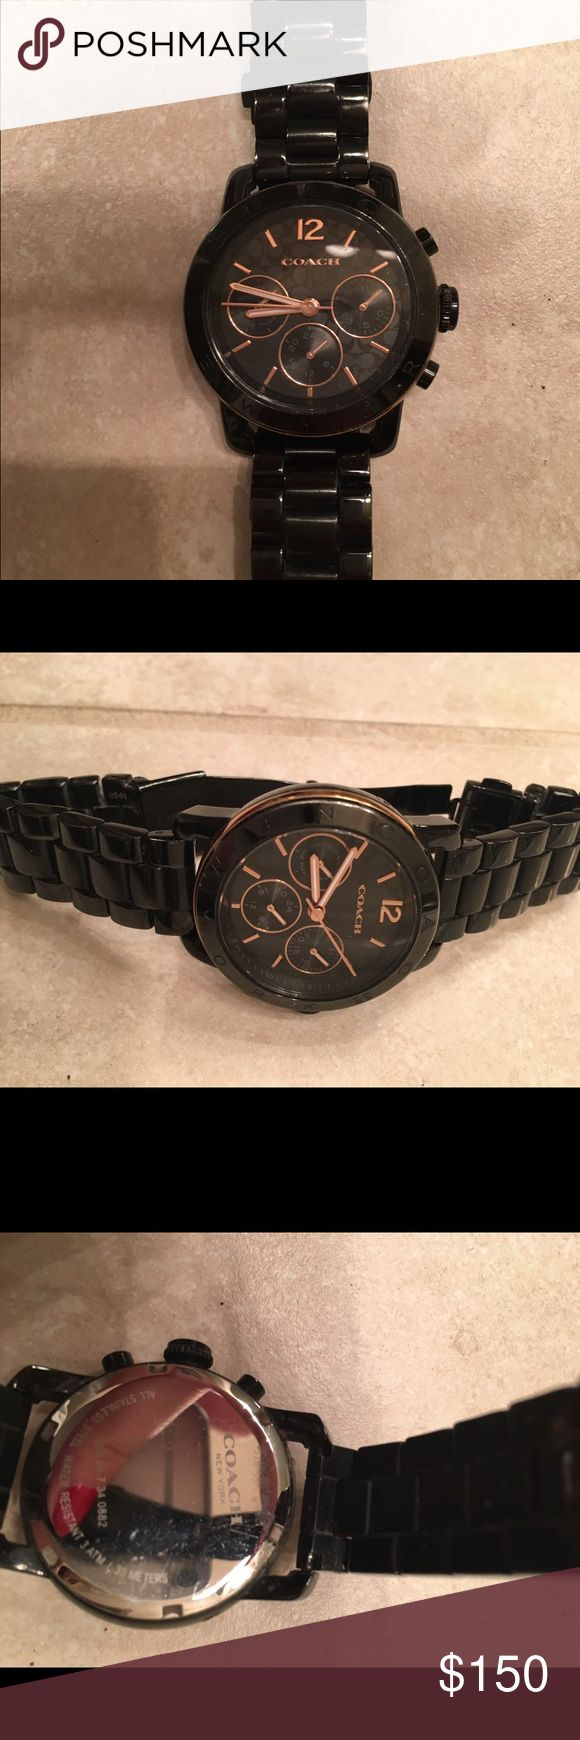 Coach watch Black and Rose gold Coach watch. Used condition. Has extra links and original box. coach Accessories Watches